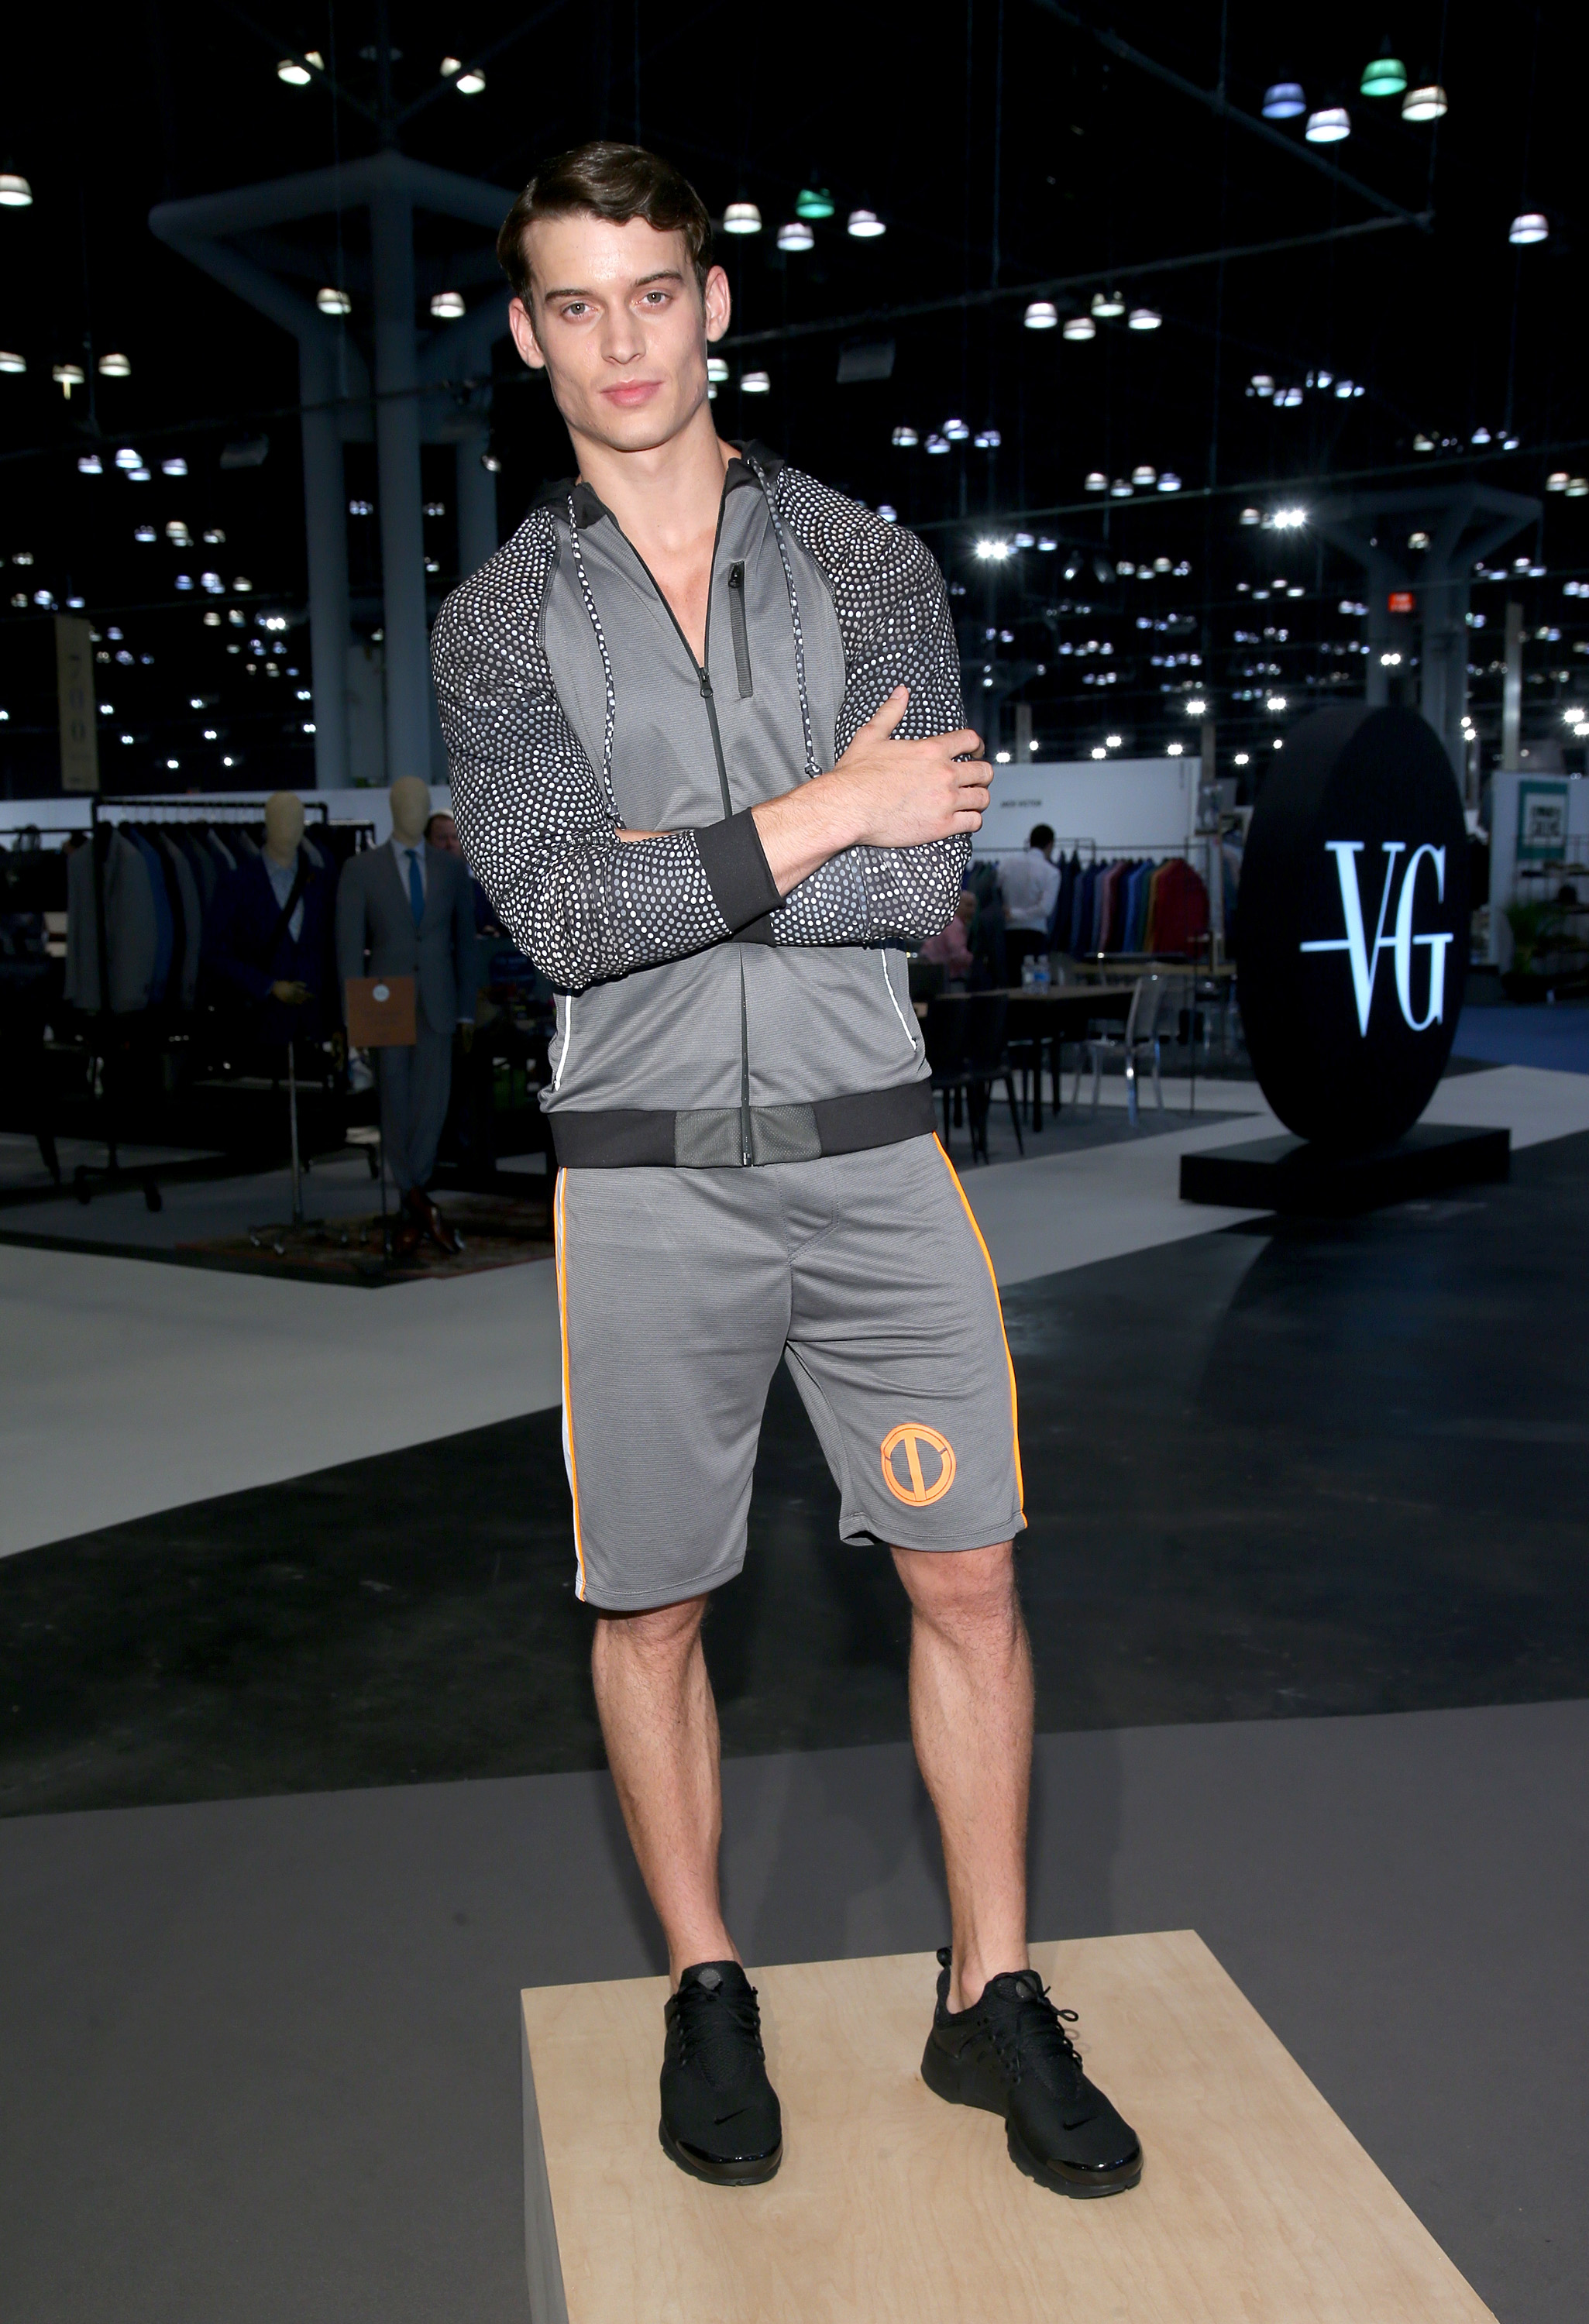 NEW YORK, NY - JULY 18: A model poses wearing Prototype 81 Collection by Terrell Owens at the Preview of Prototype 81 Collection at the Jacob Javits Center on July 18, 2016 in New York City.